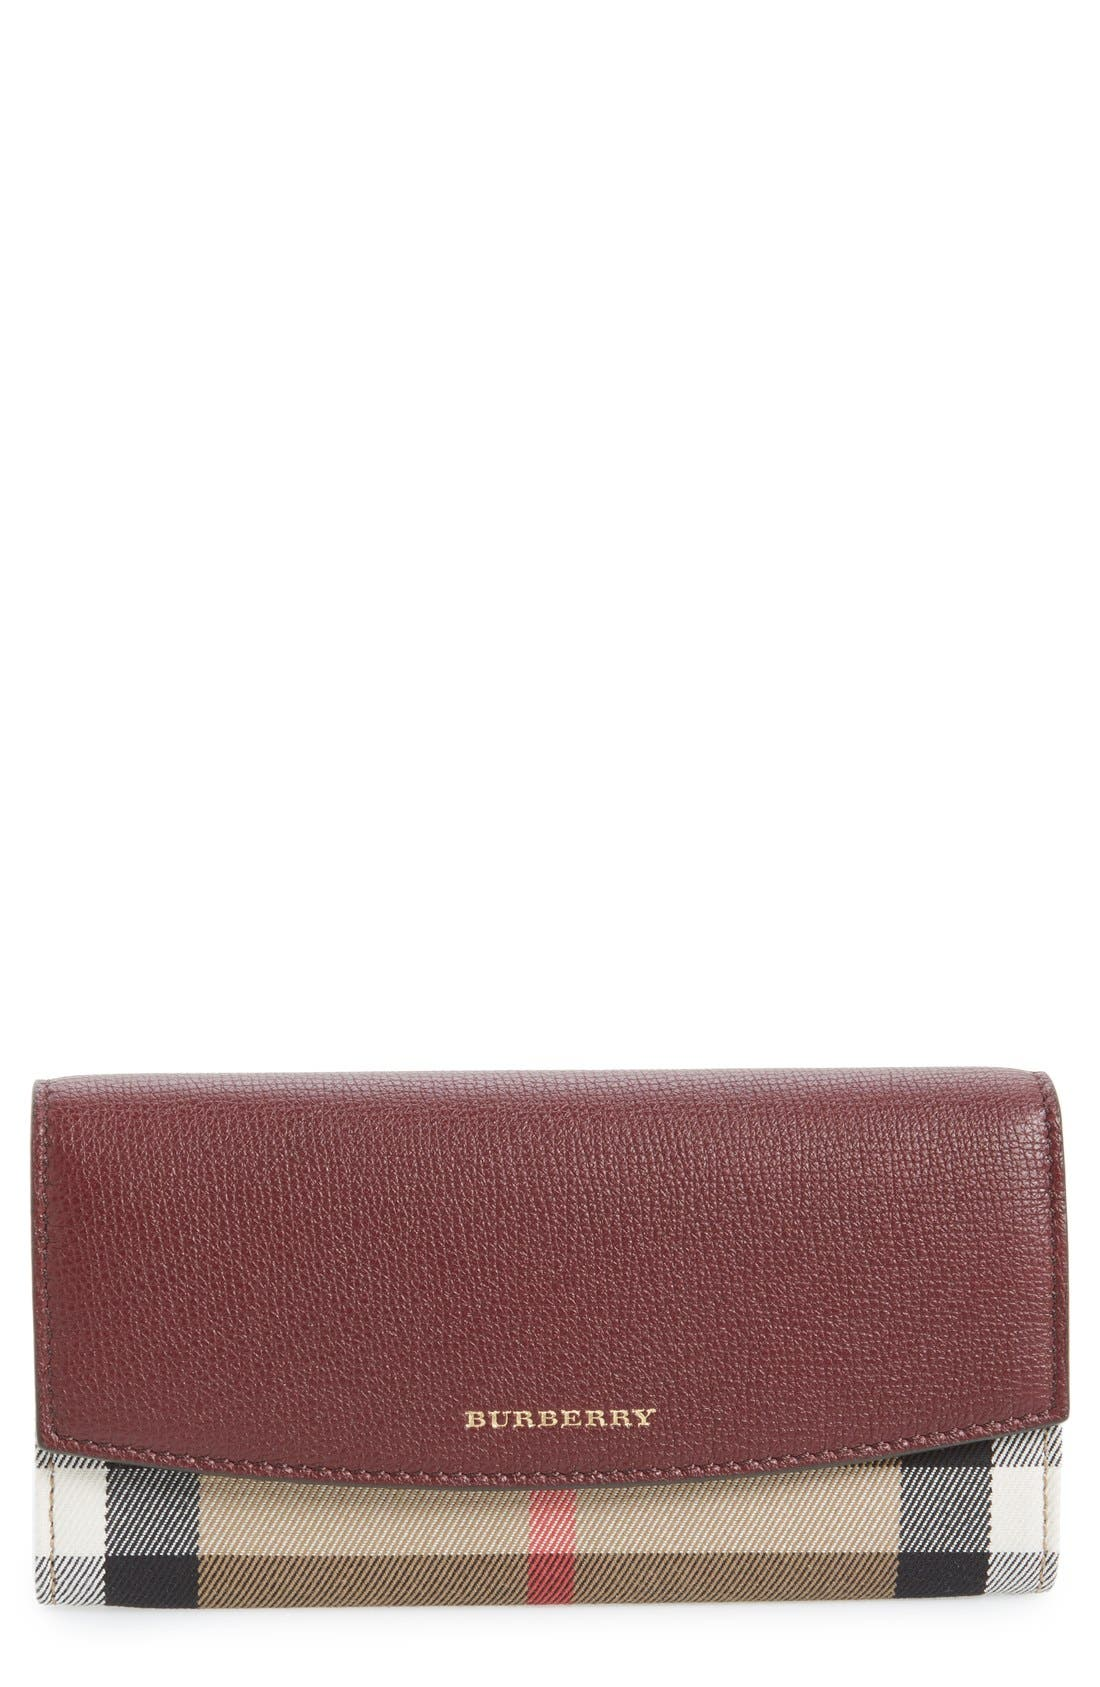 BURBERRY 'Porter - Check' Continental Wallet